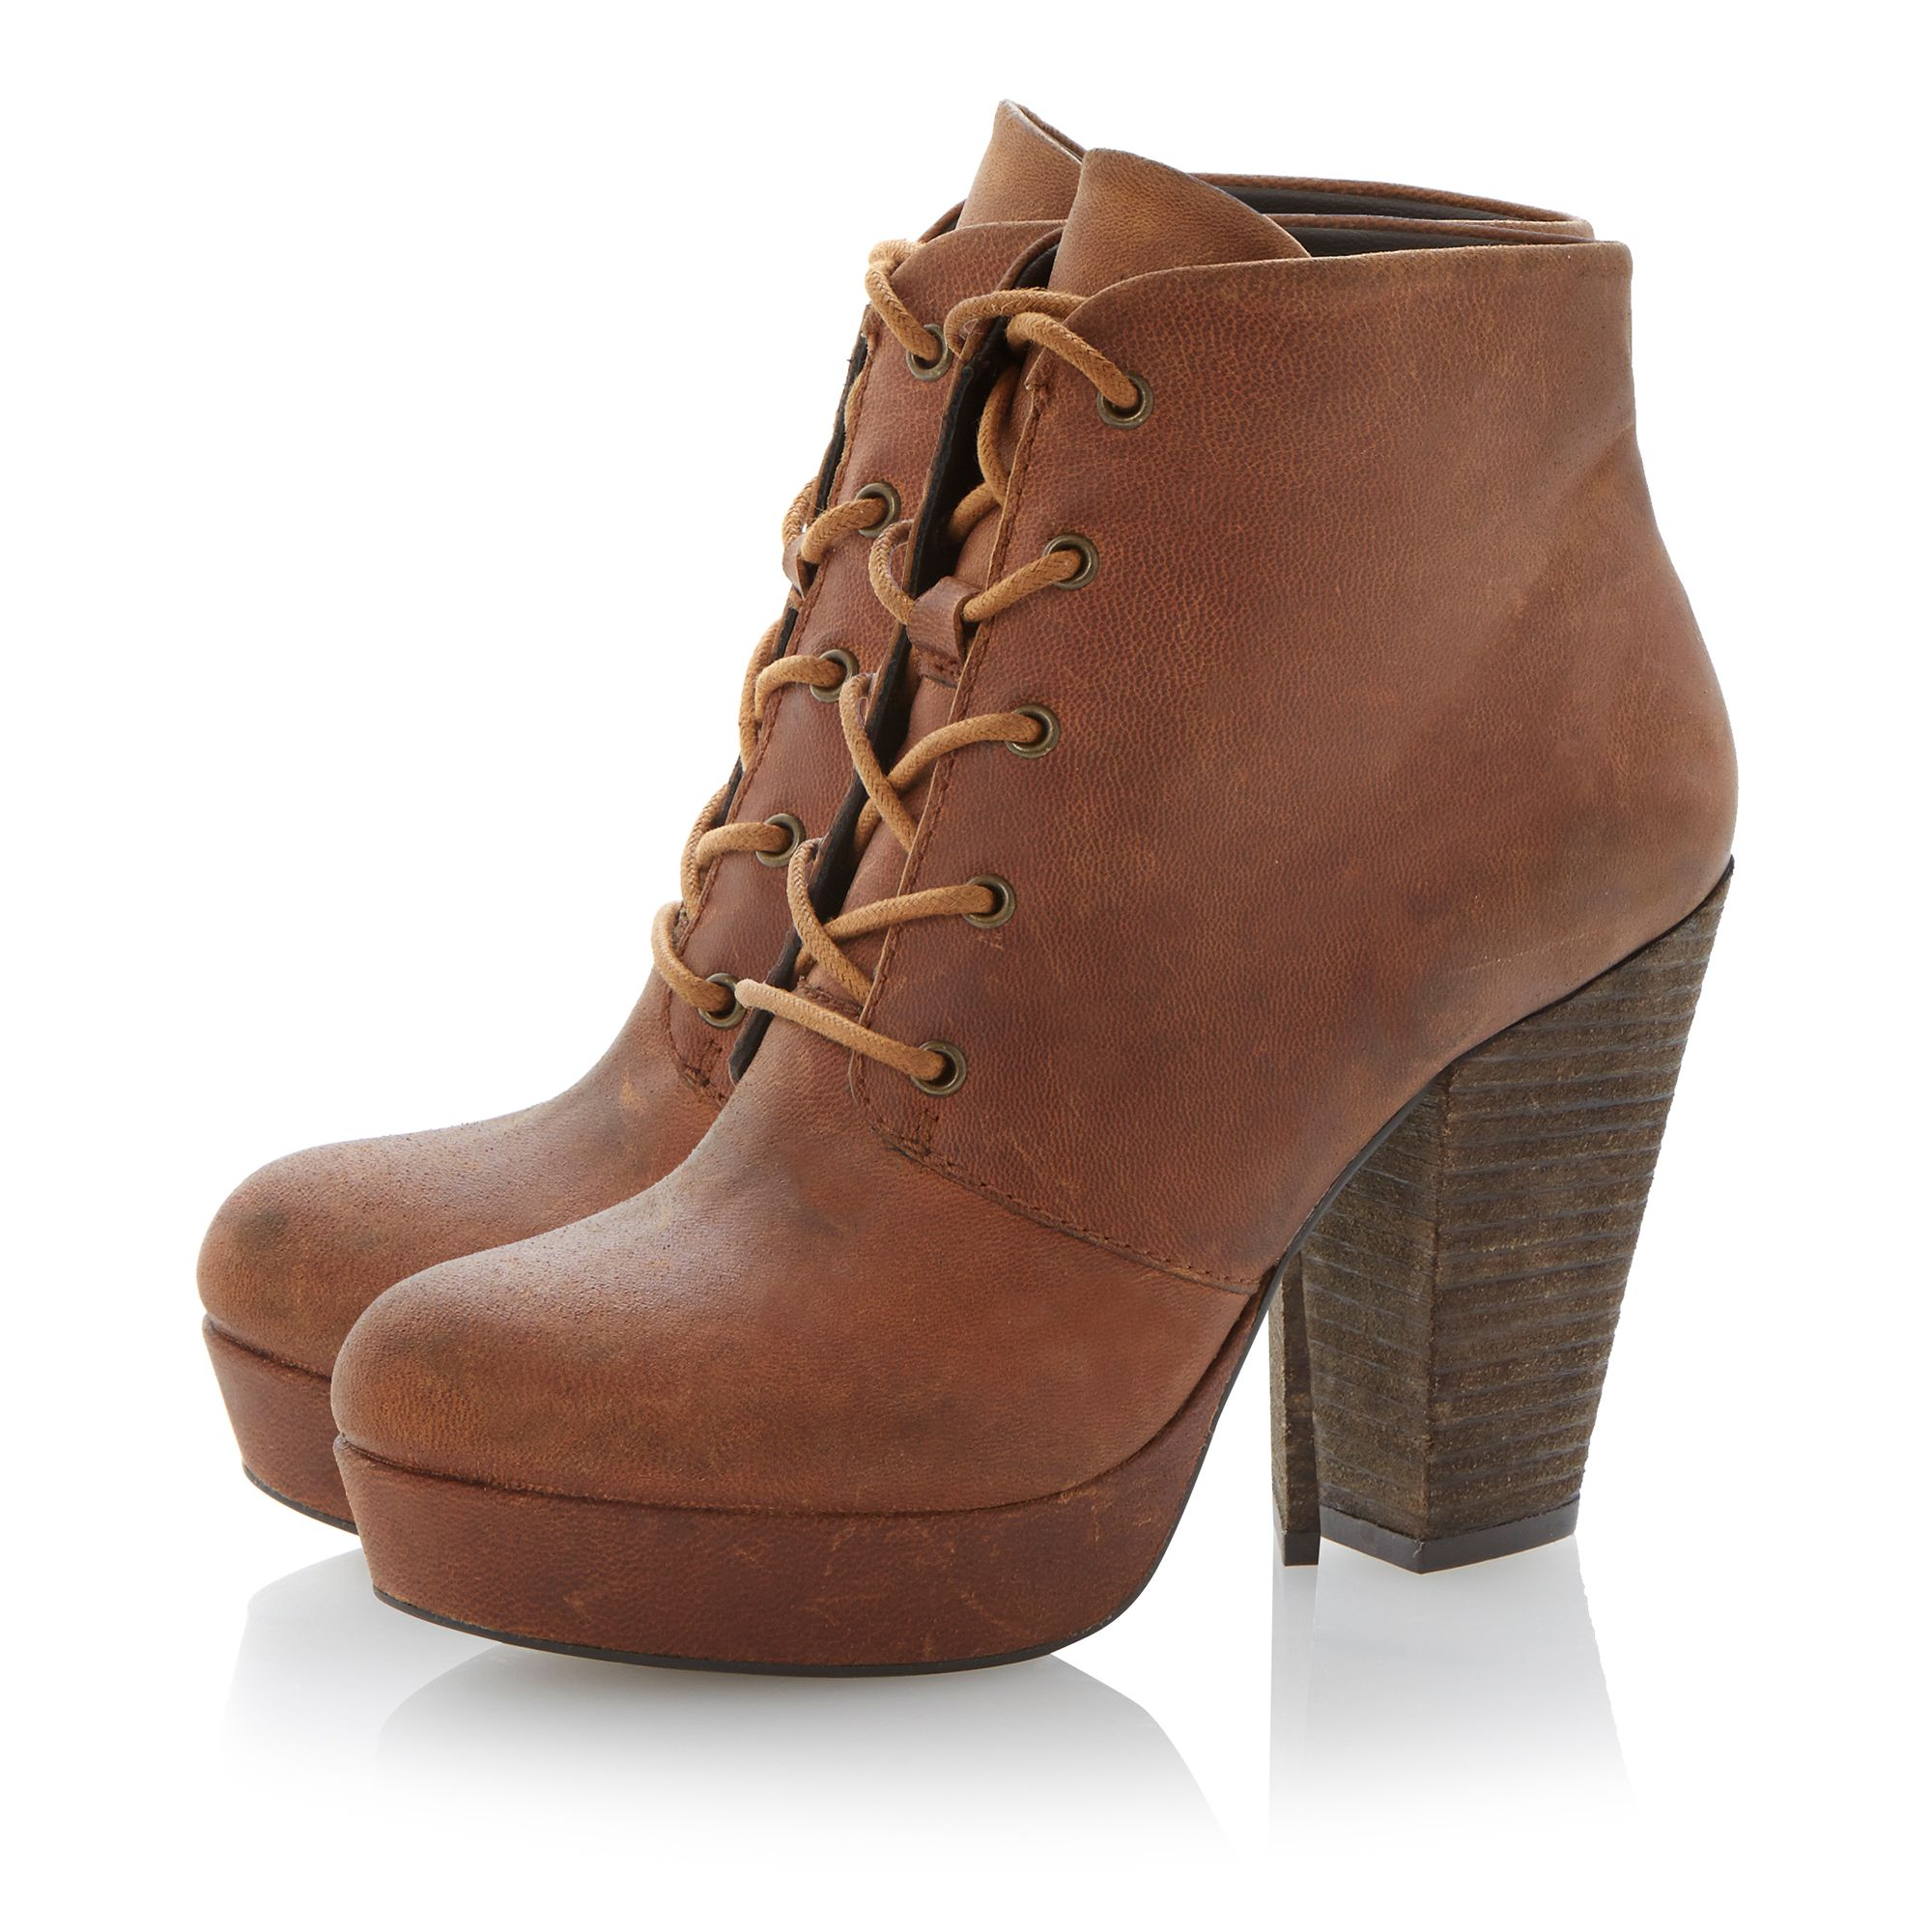 Raspy leather almond toe block heel boots